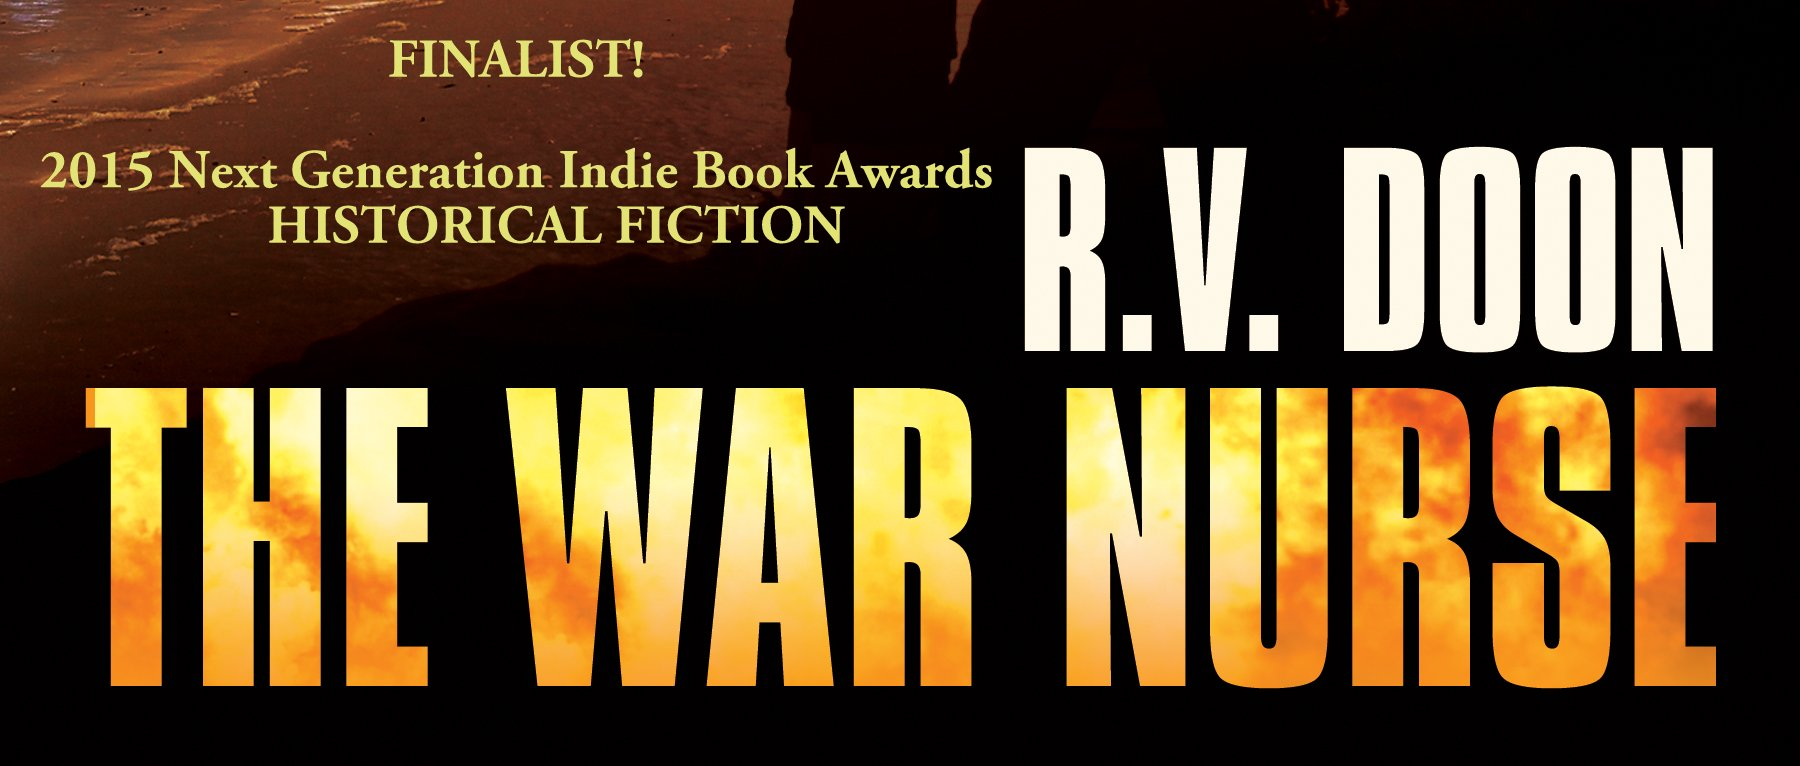 Finalist! 2015 Next Generation Indie Book Awards: Historical Fiction